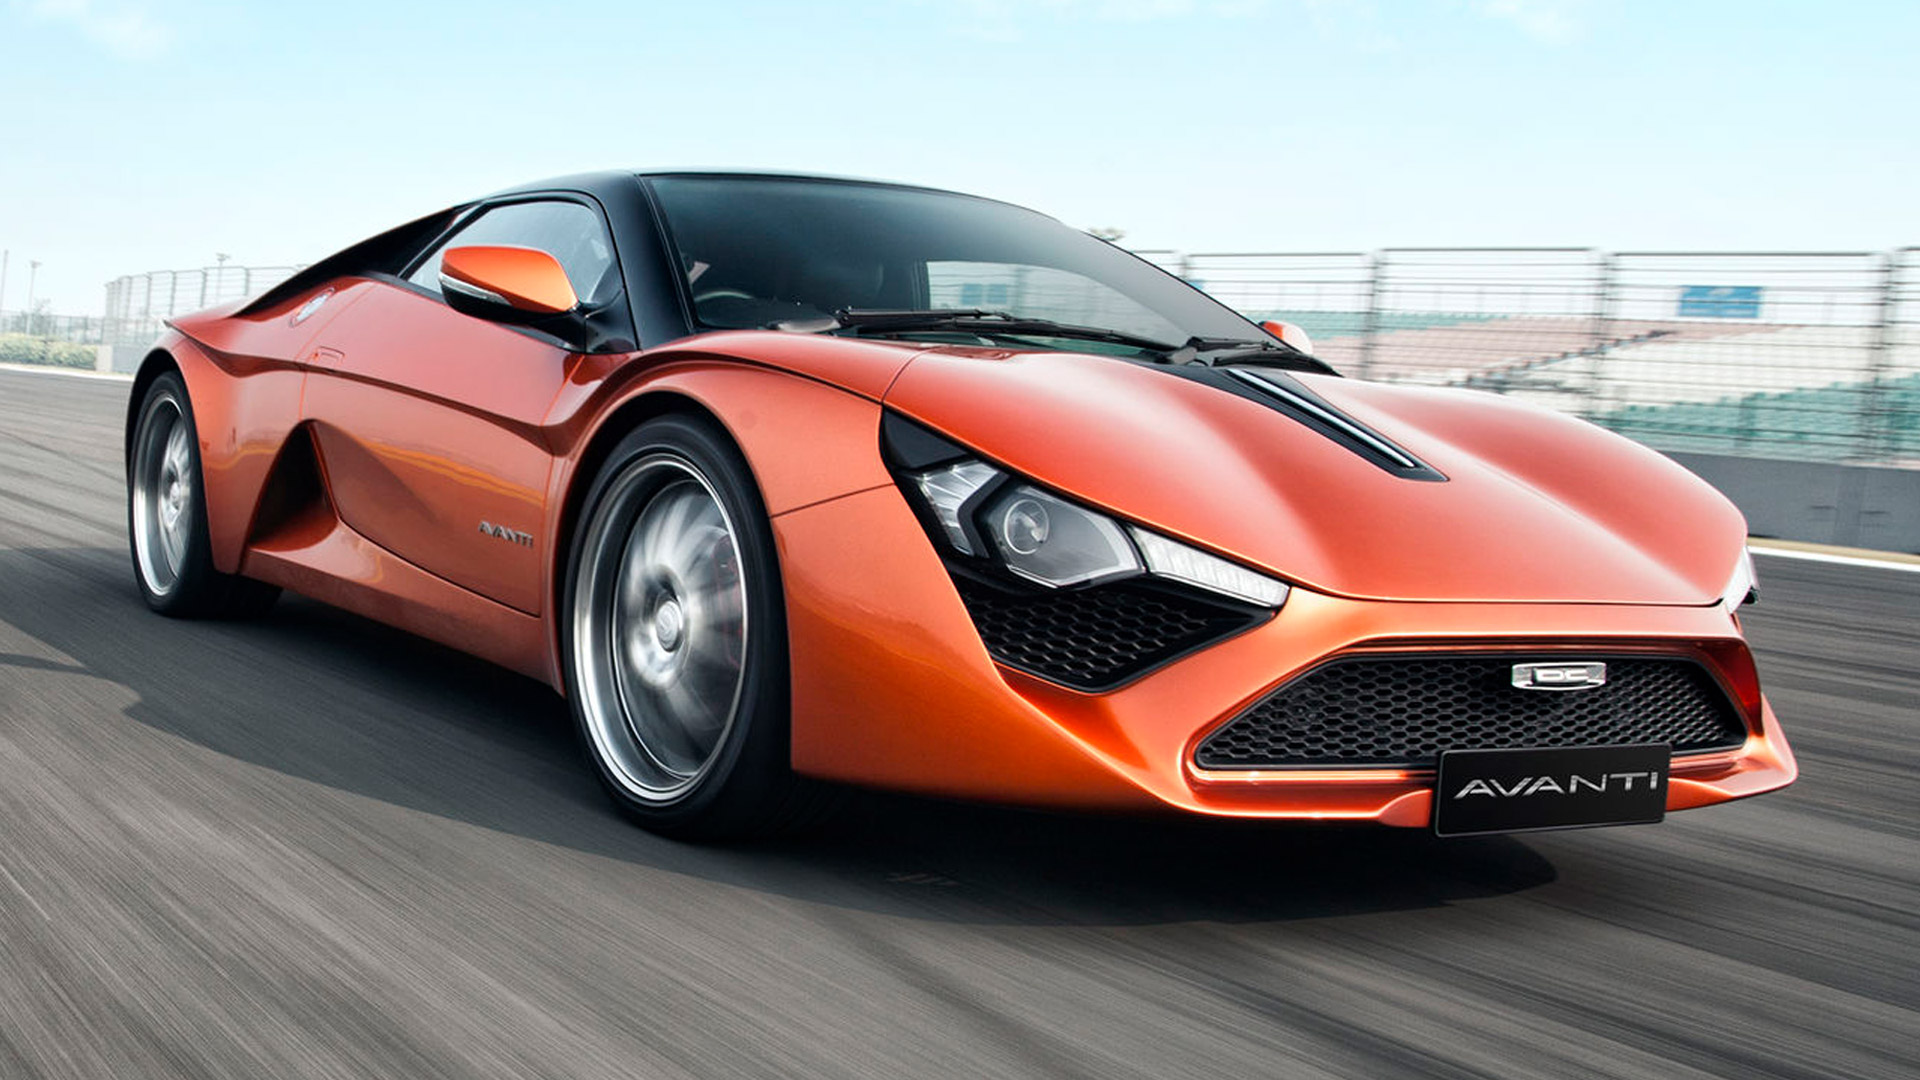 dc design avanti 2015 price mileage reviews designers in dc DC Design Avanti 2015